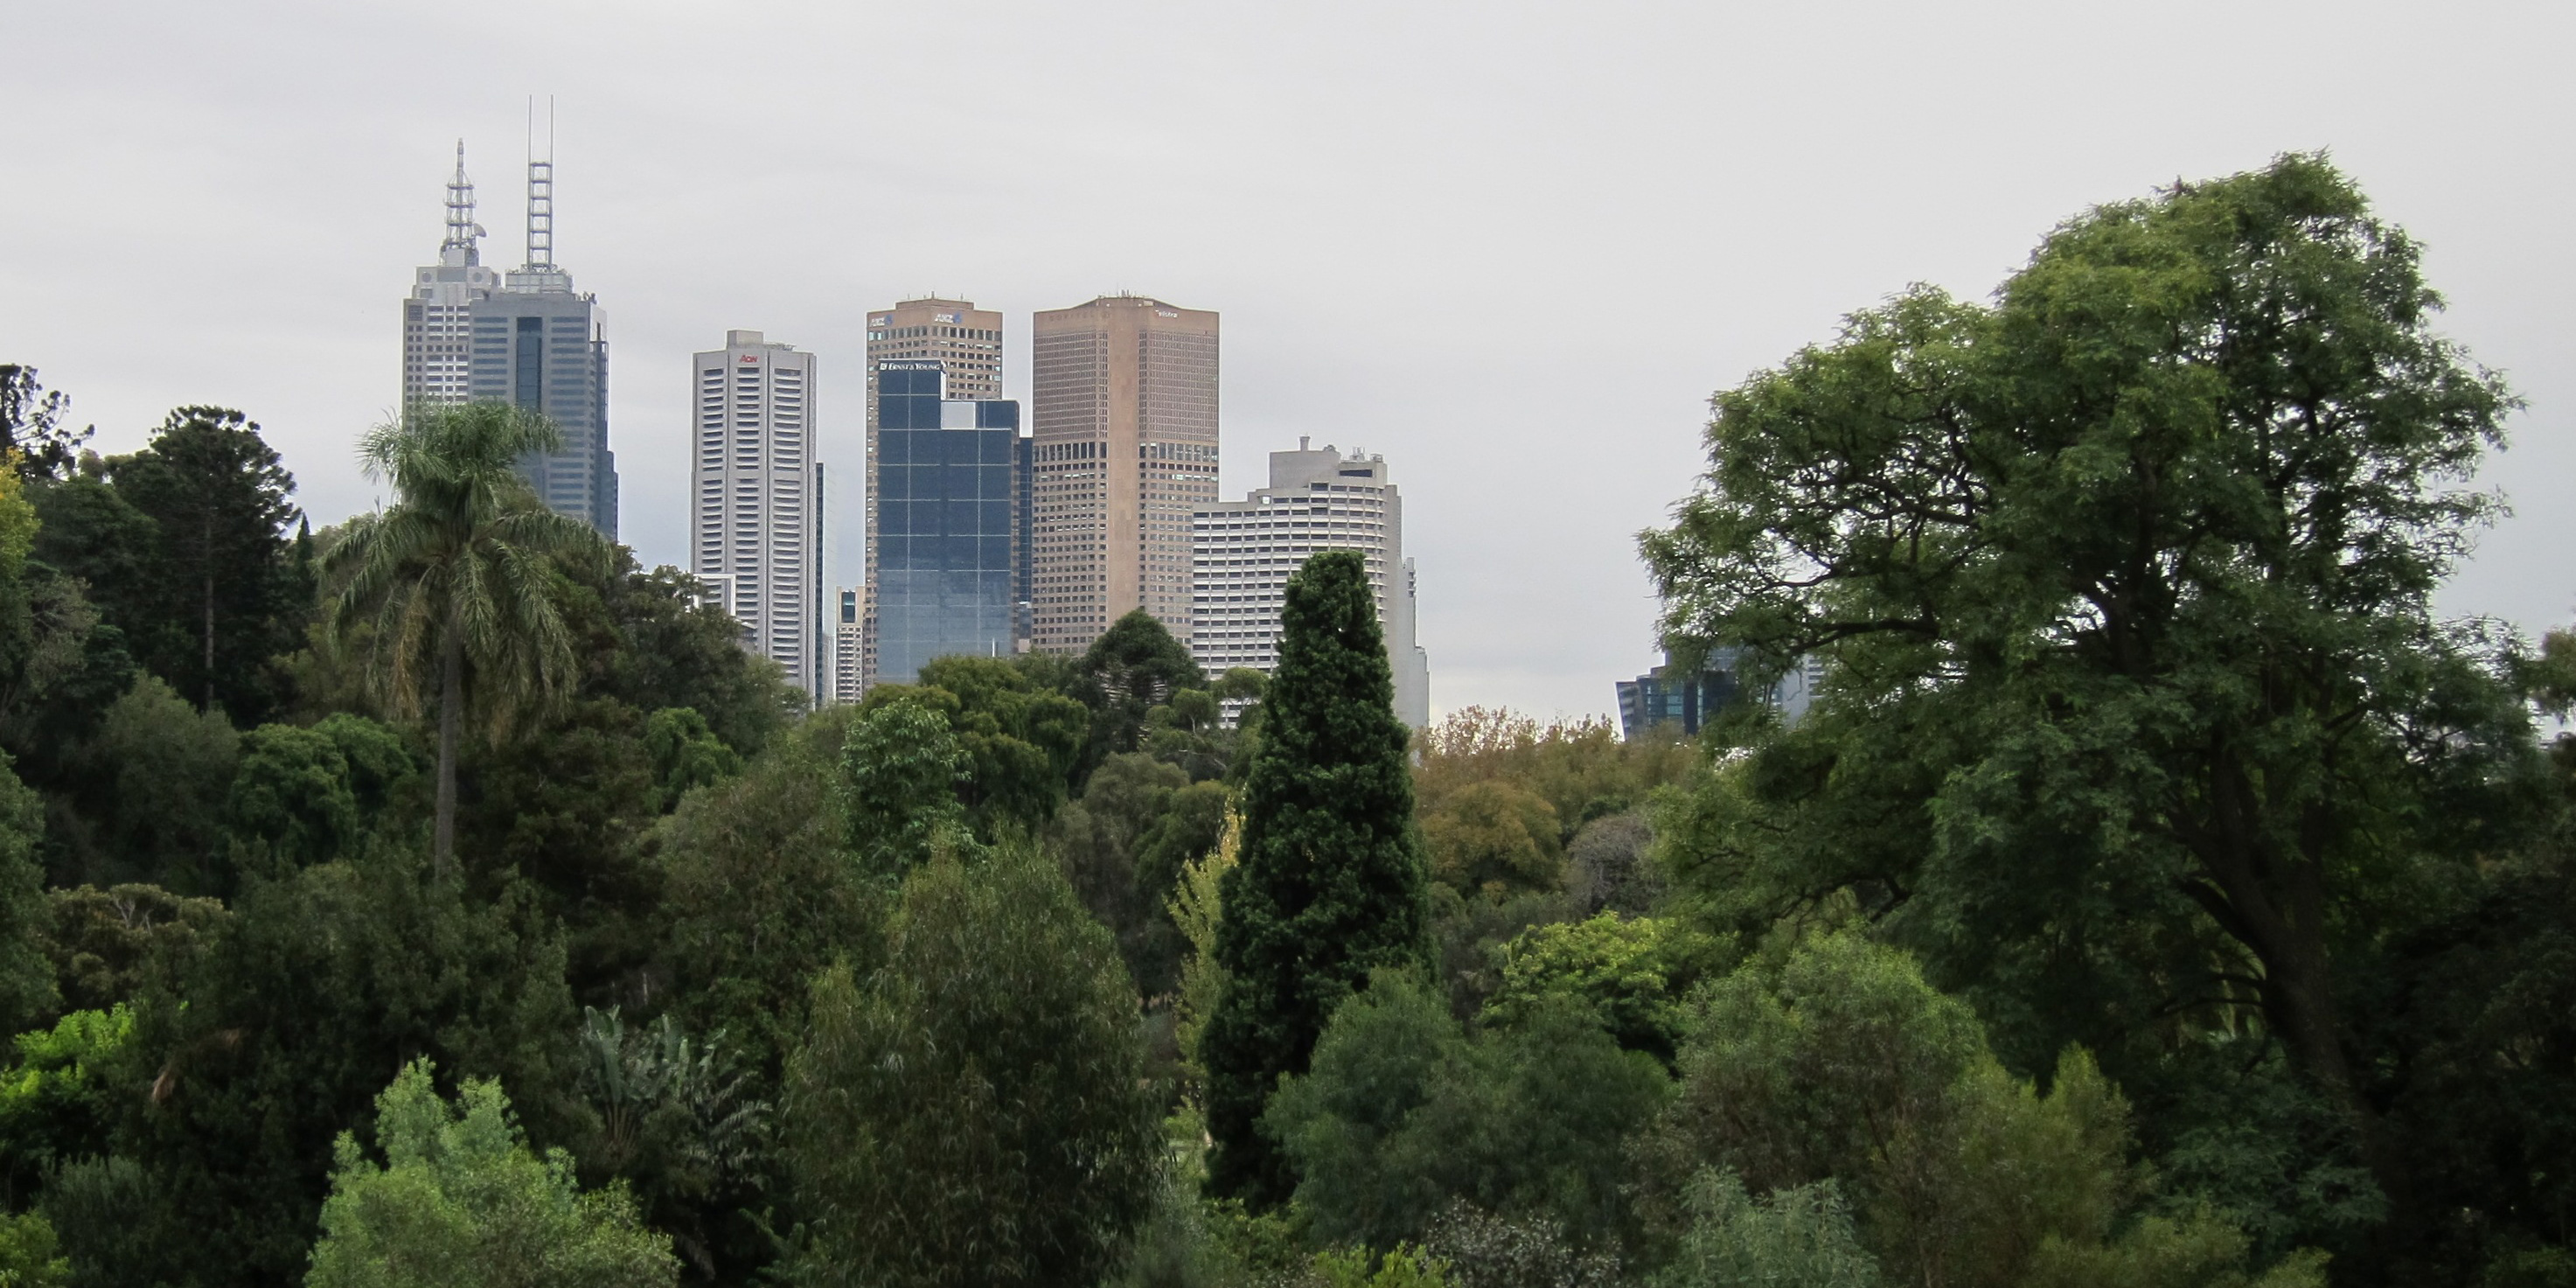 Melbourne is using urban trees to bring down temperatures. In 2012, the city council launched an ambitious project to double the tree canopy cover by 2040, by planting about 3,000 new trees every year. Photo credit: Satanoid/Flickr